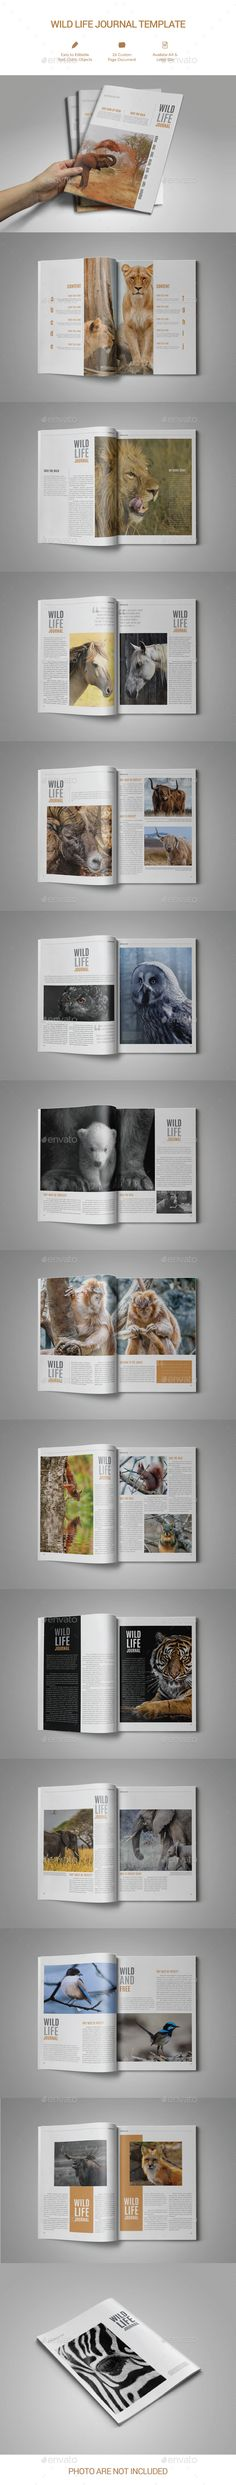 Wild Life Journal Magazine Template InDesign INDD - 26 Pages A4 & US Letter Size